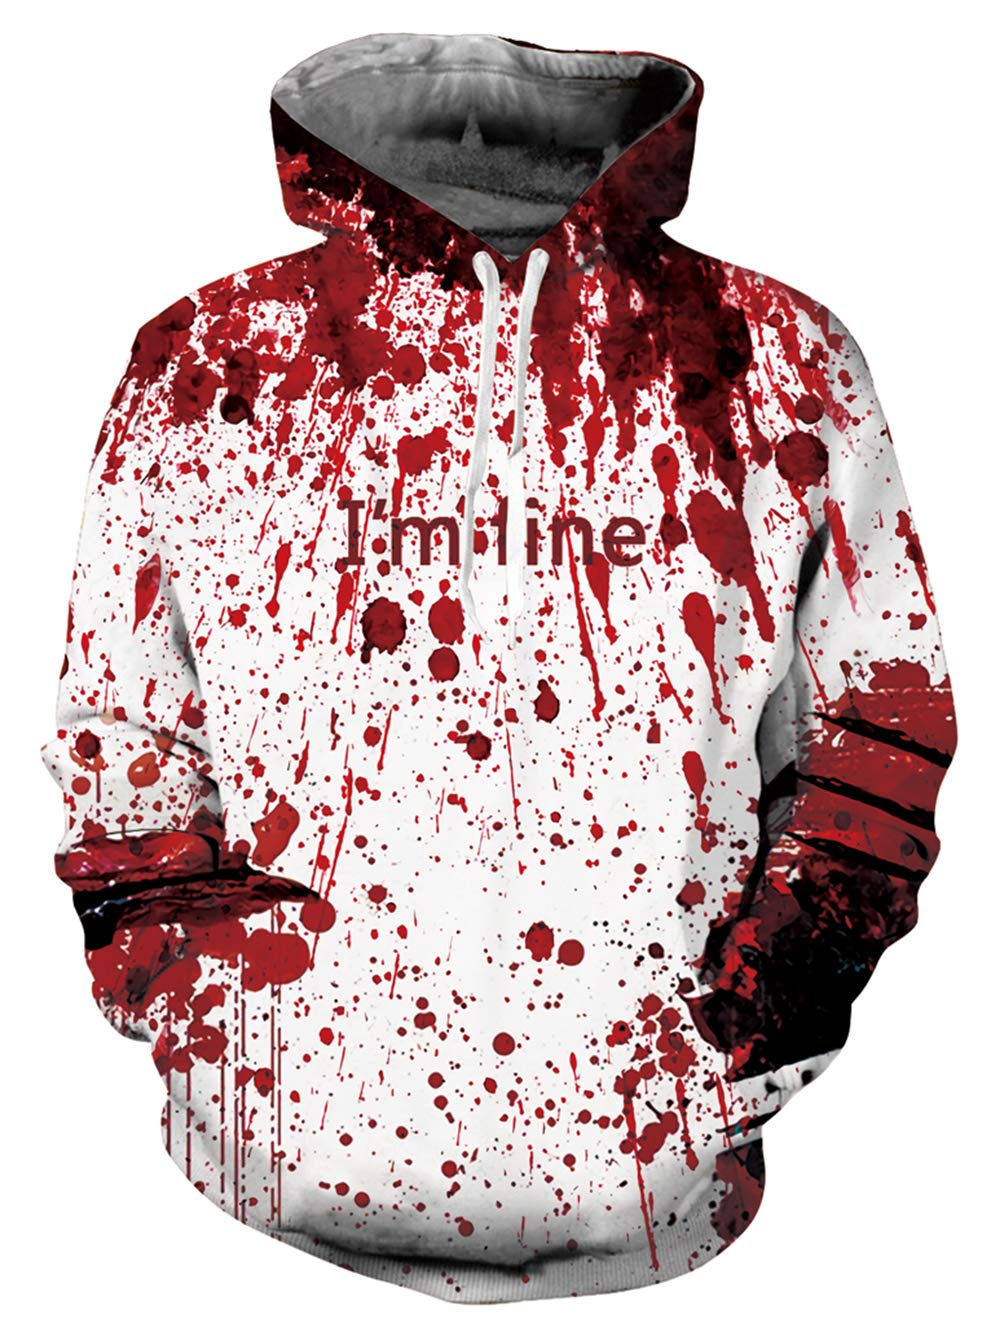 Great Halloween hoodie sweatshirt or novelty jacket